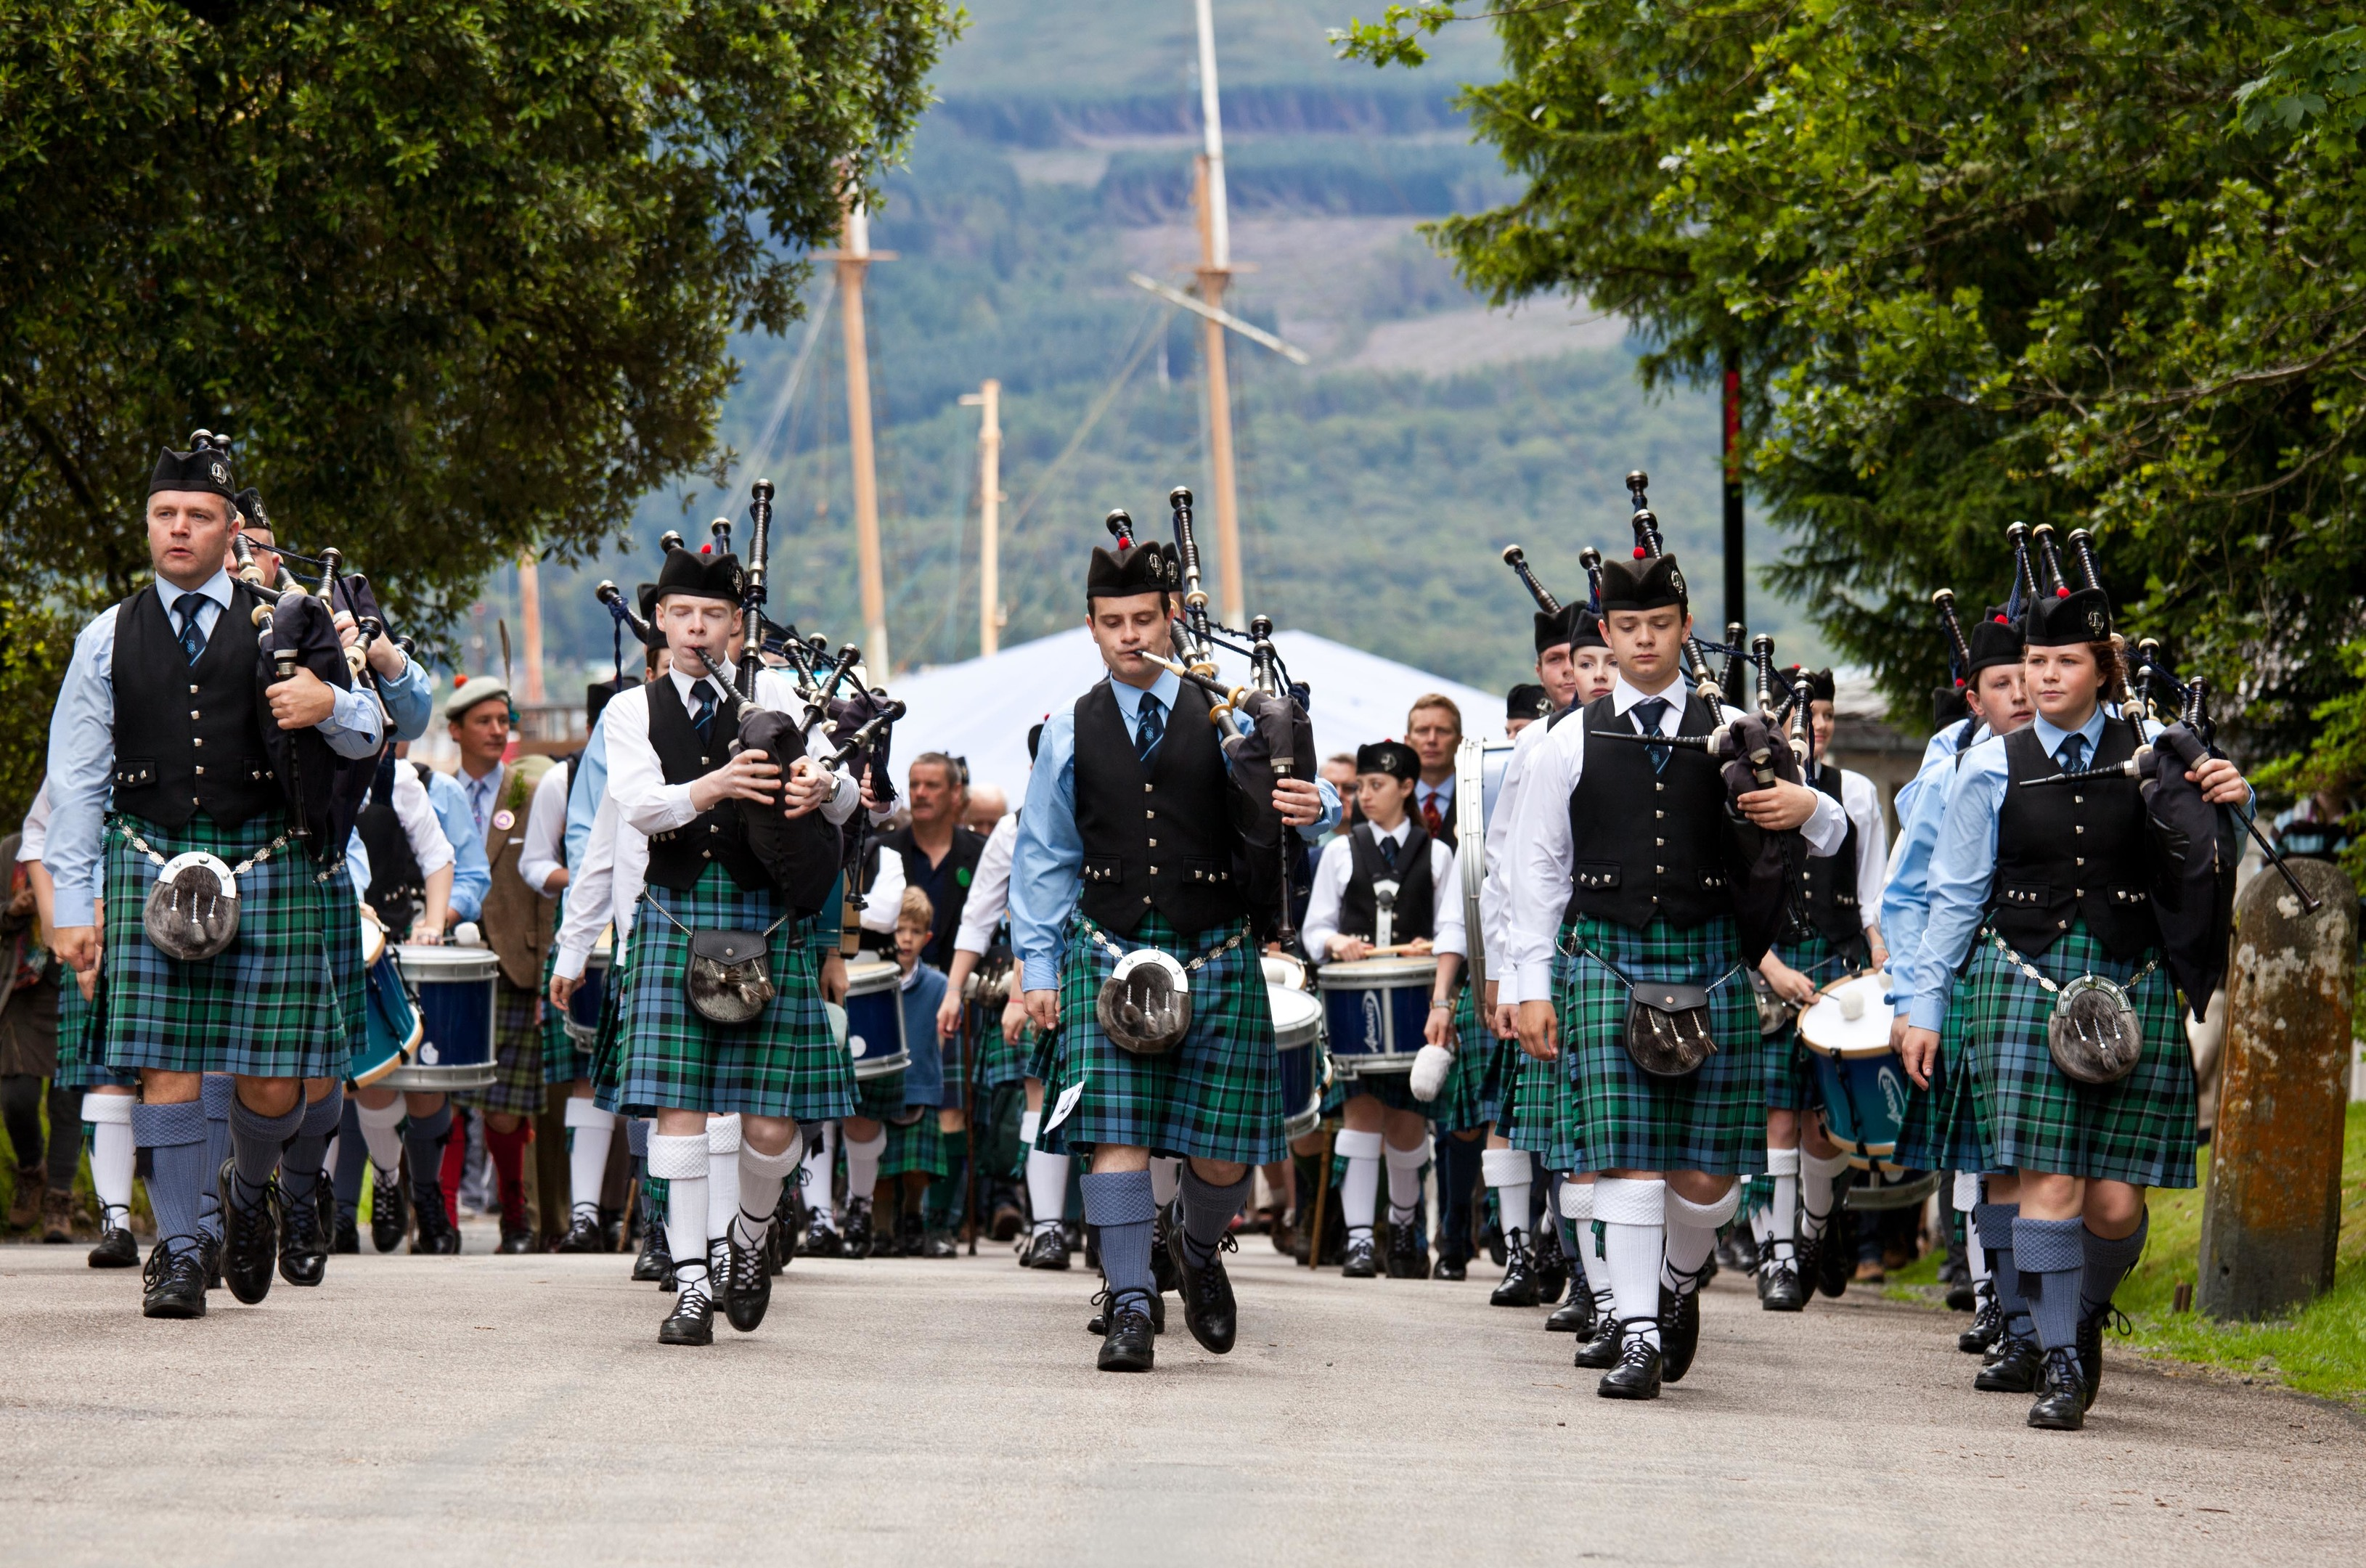 Once again big crowds are expected to turn out for the Inveraray Highland Games